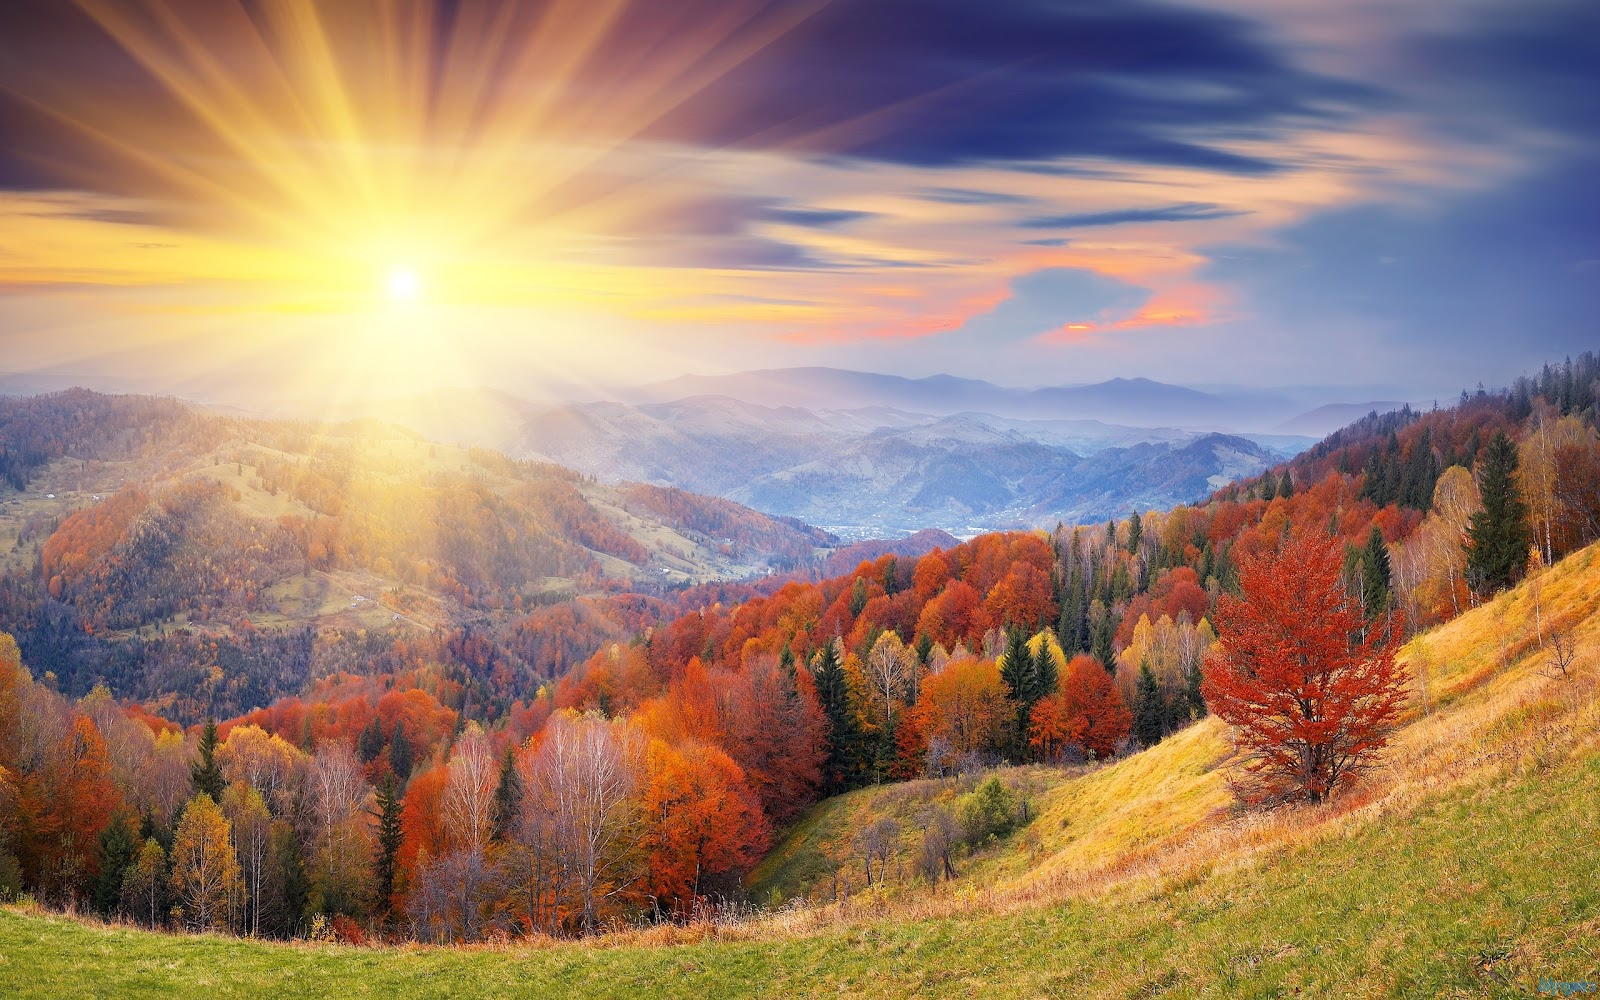 : Download Autumn Forest Sunrise Wallpaper, Autumn Forest Sunrise